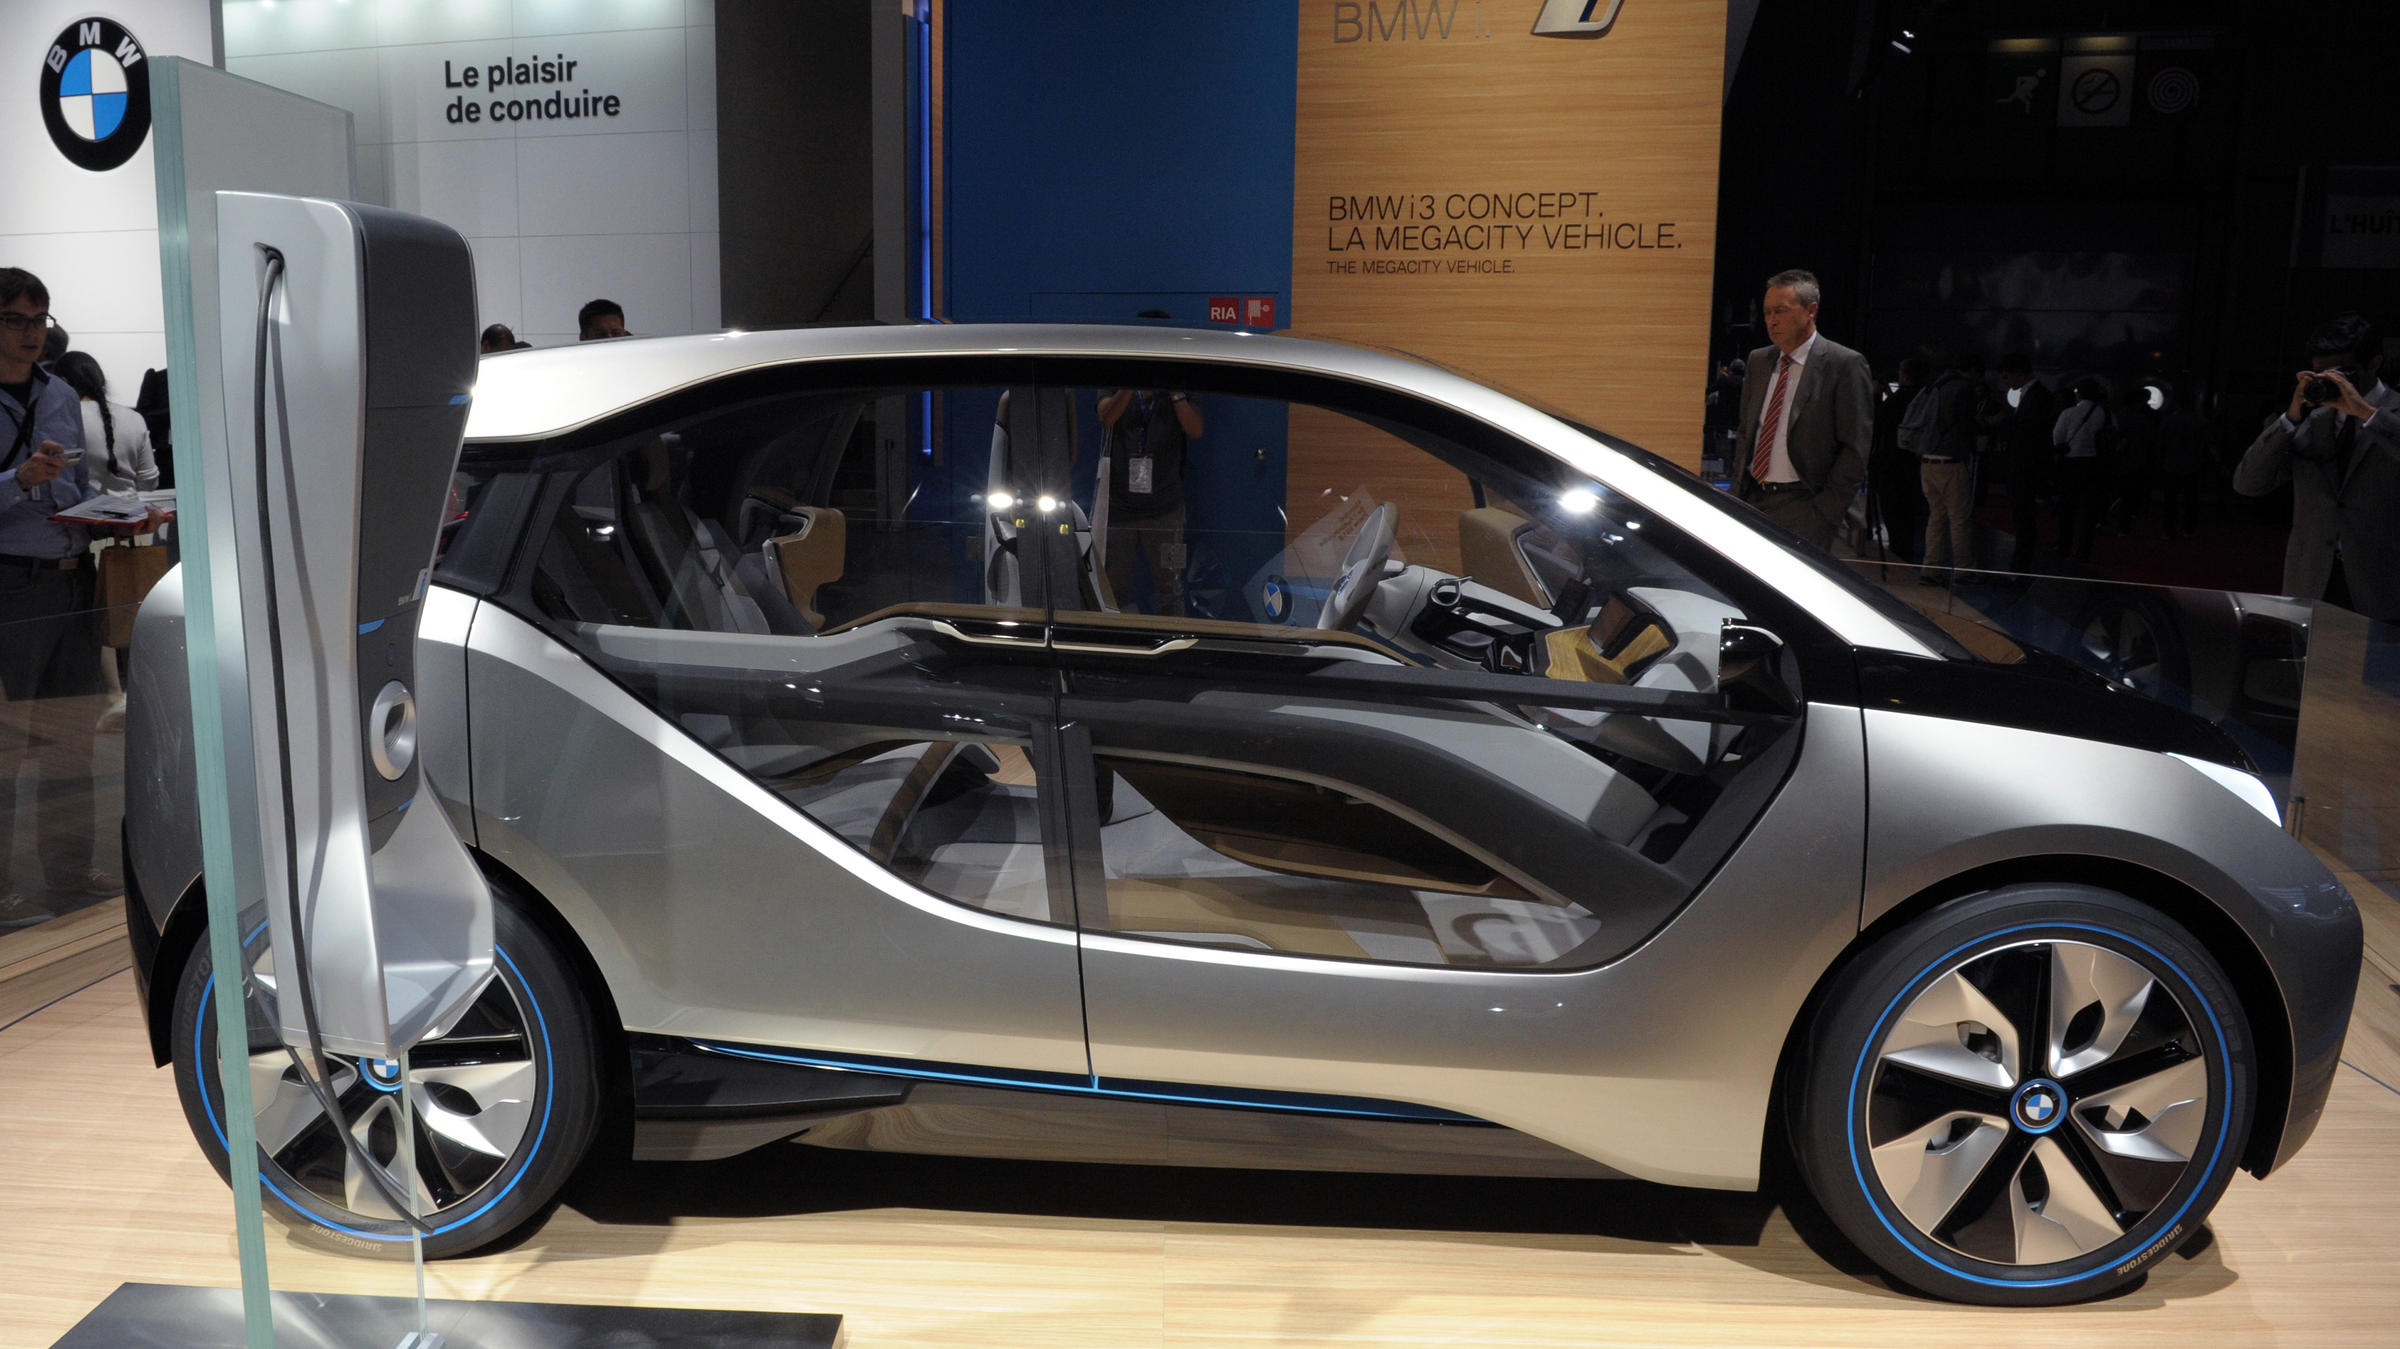 Bmw S Electric Compact May Come With An Optional Suv Backup Kunc